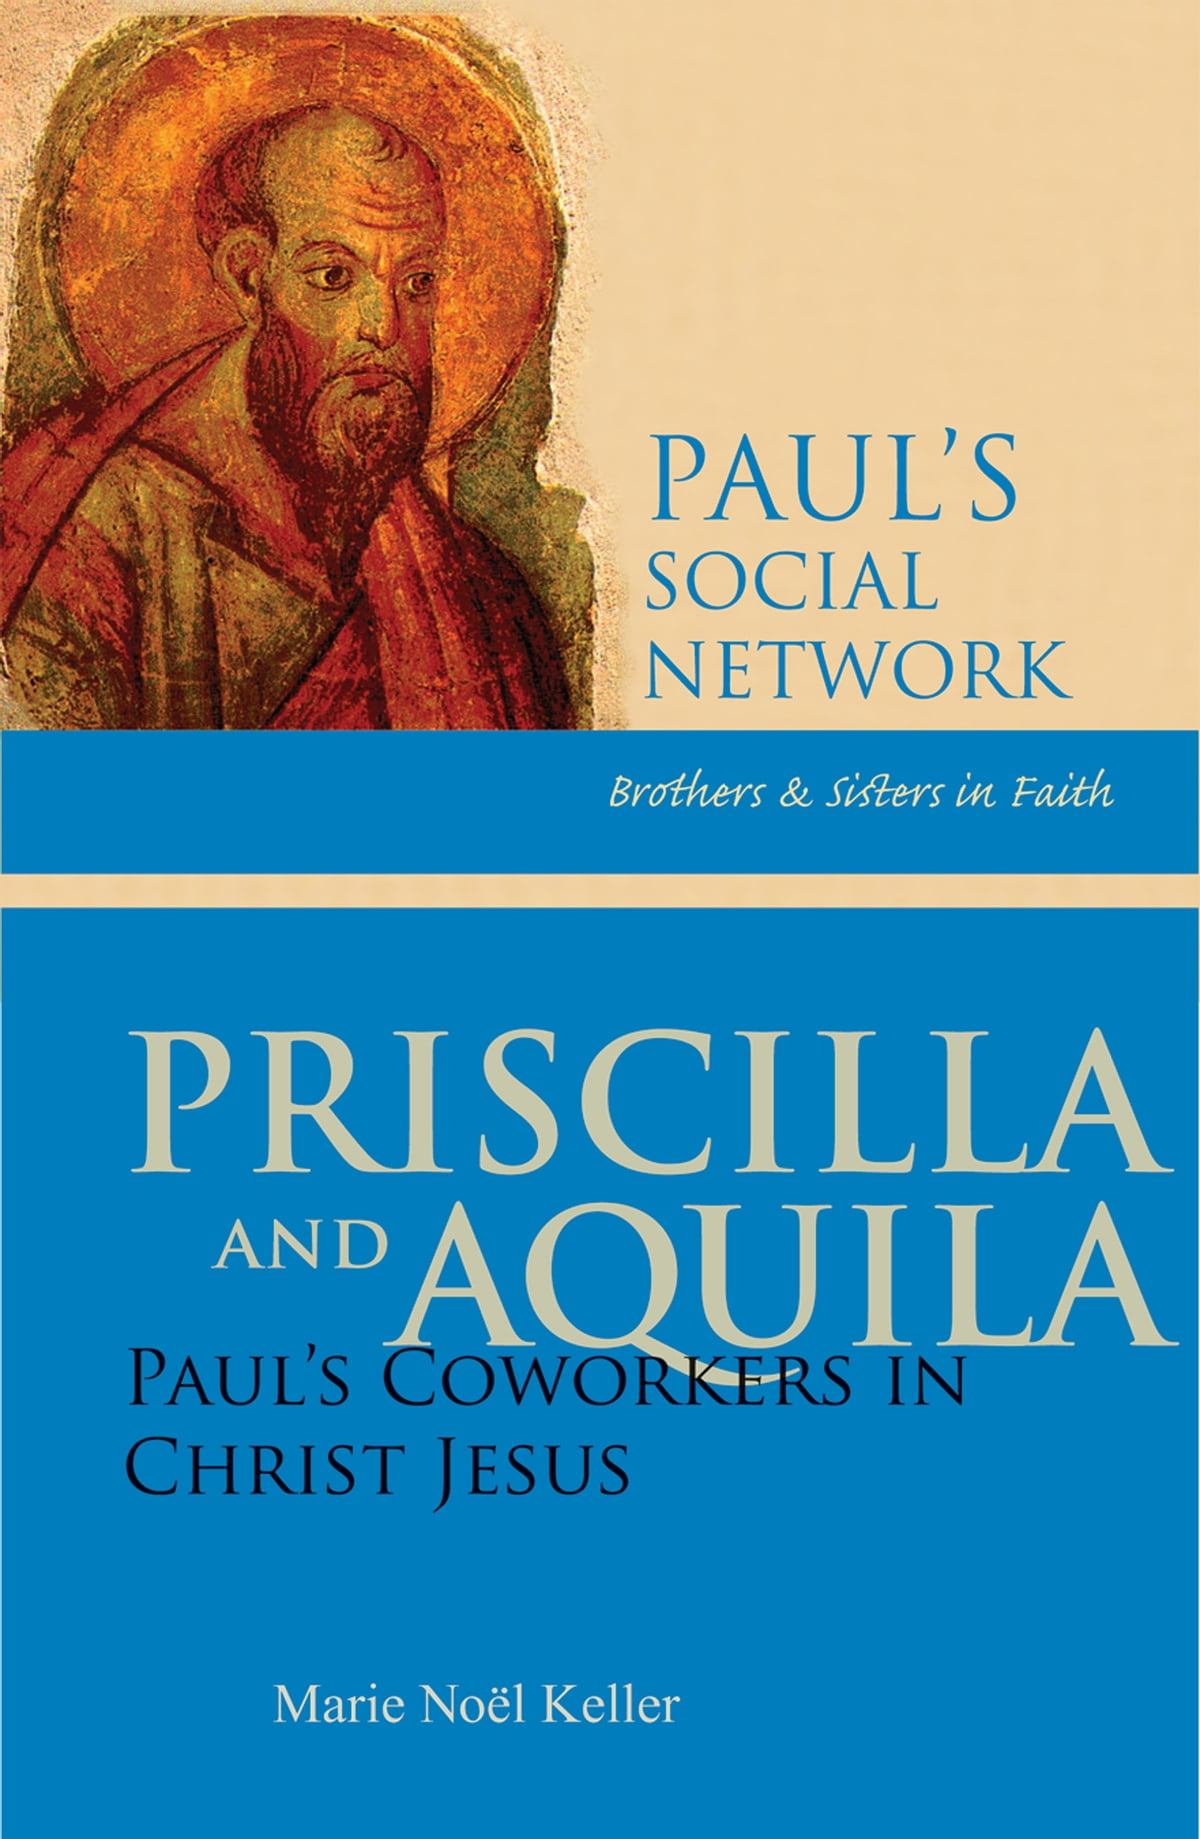 Priscilla And Aquila Ebook By Marie Noel Keller Rsm